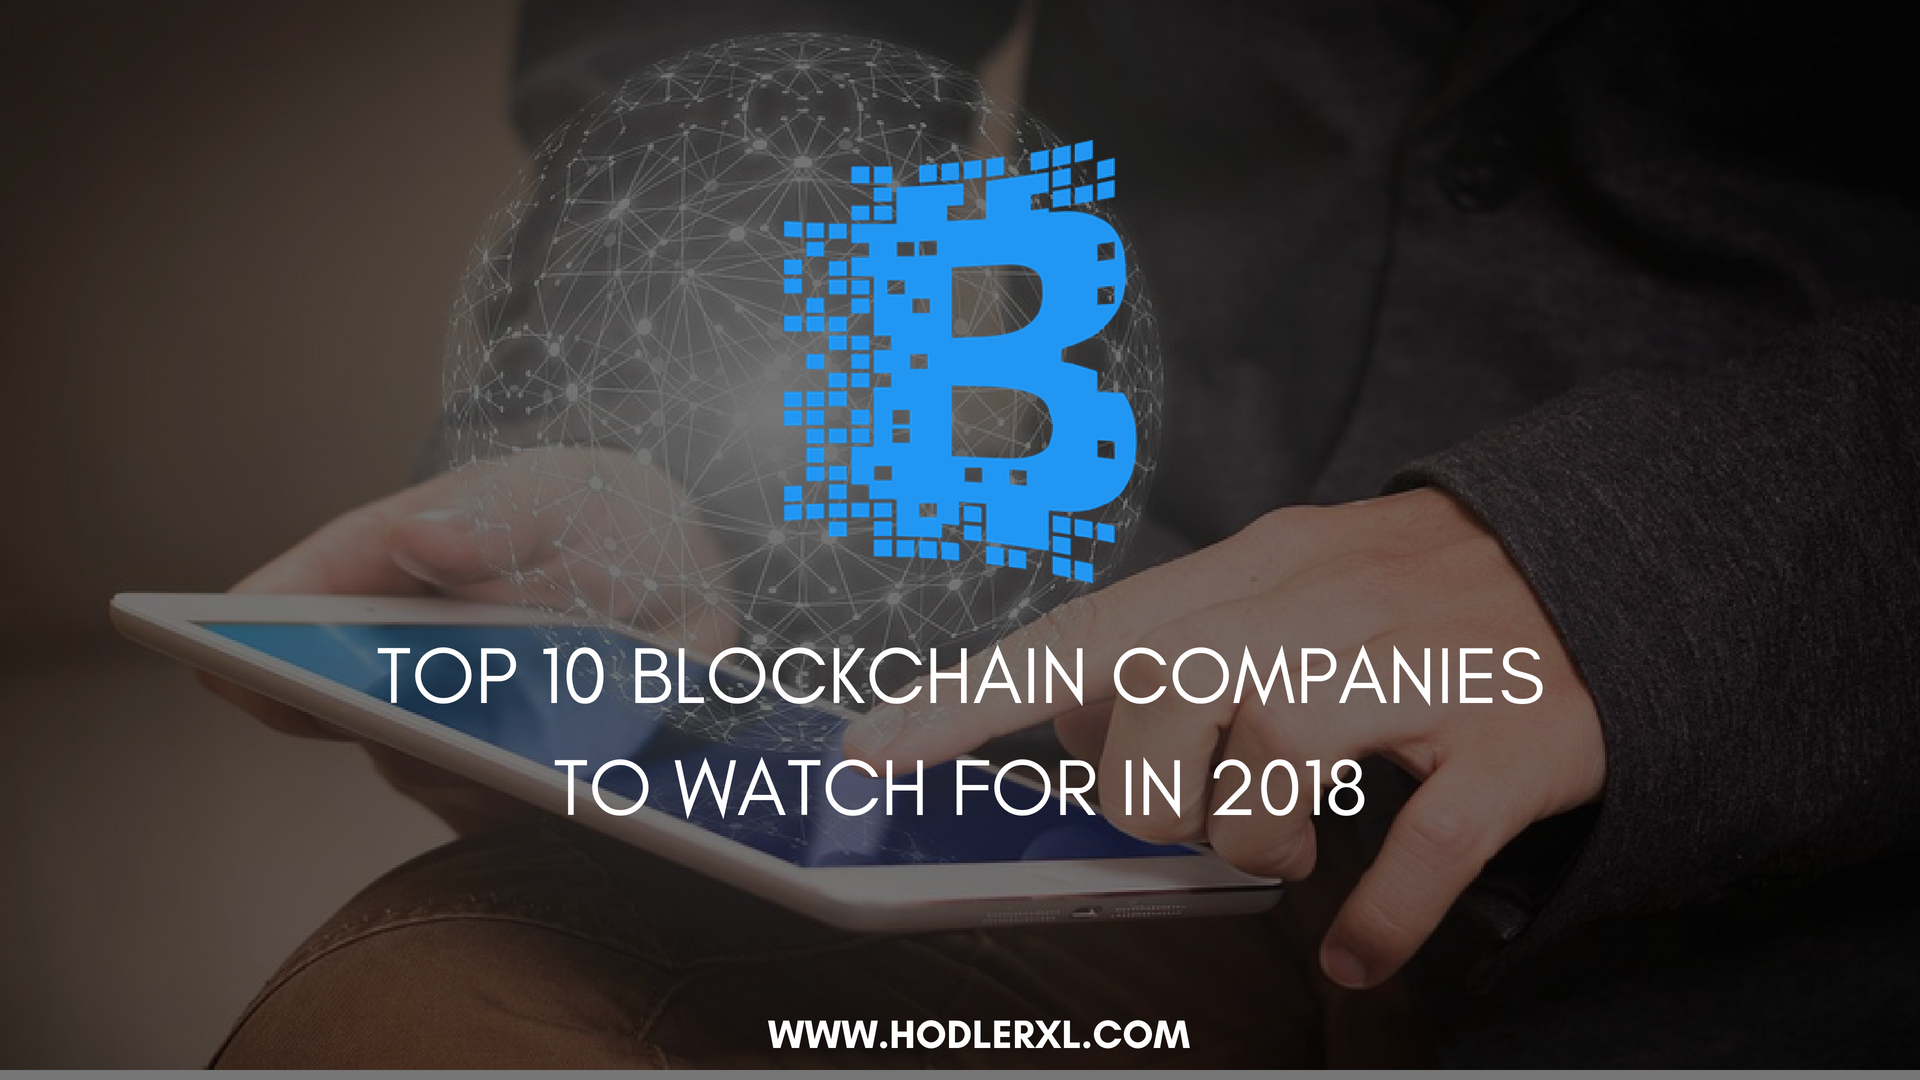 Top 10 Blockchain Companies To Watch For In 2018